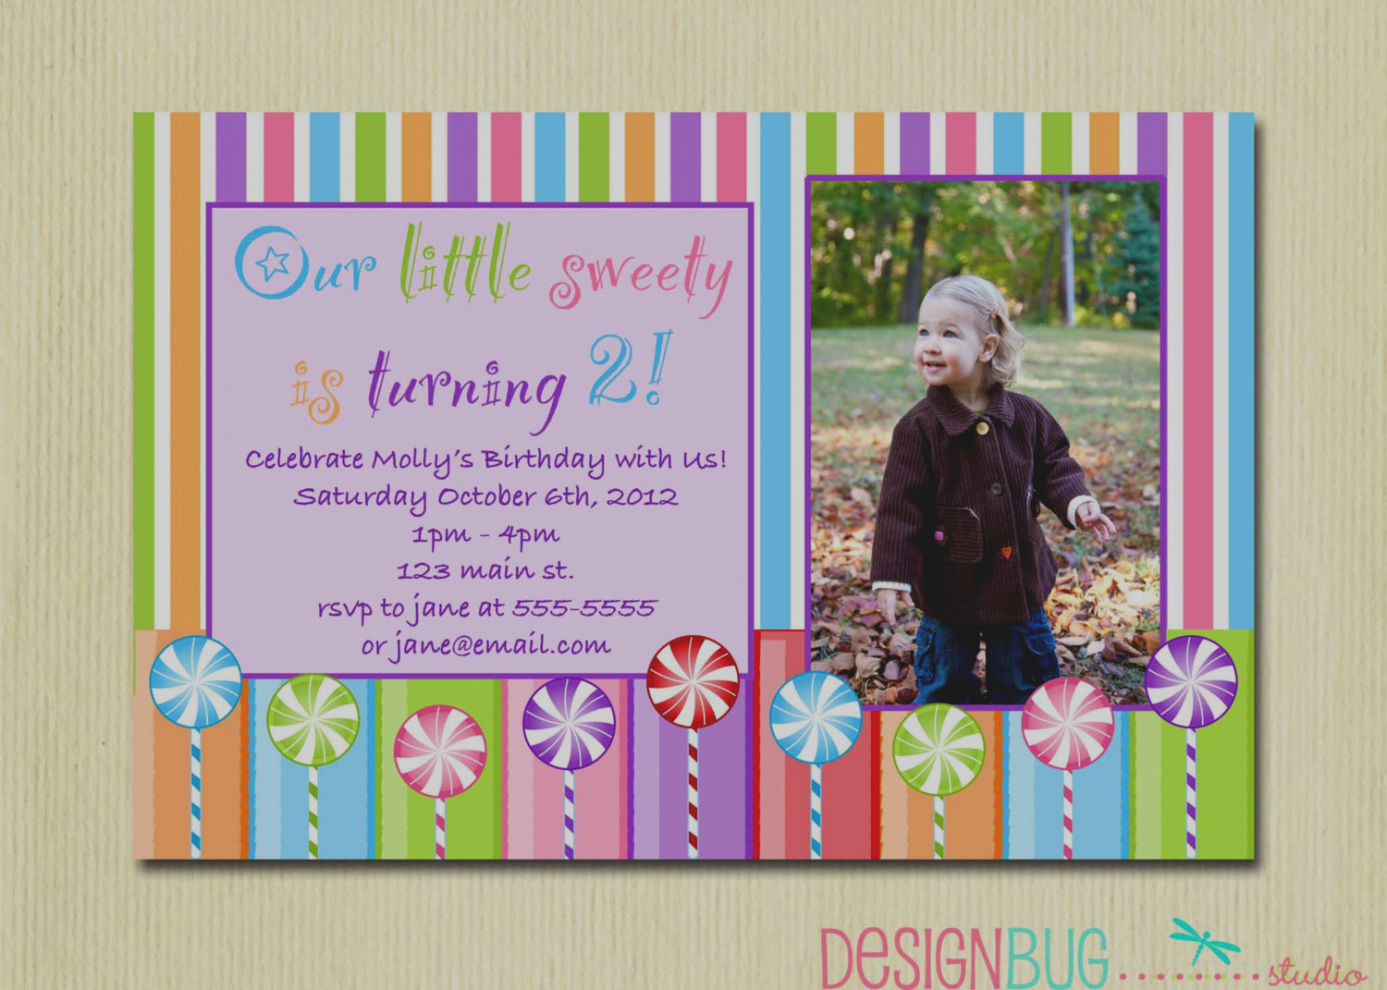 5 year old boy birthday card ideas ; collection-of-birthday-invitation-wording-for-5-year-old-boy-1-best-party-ideas